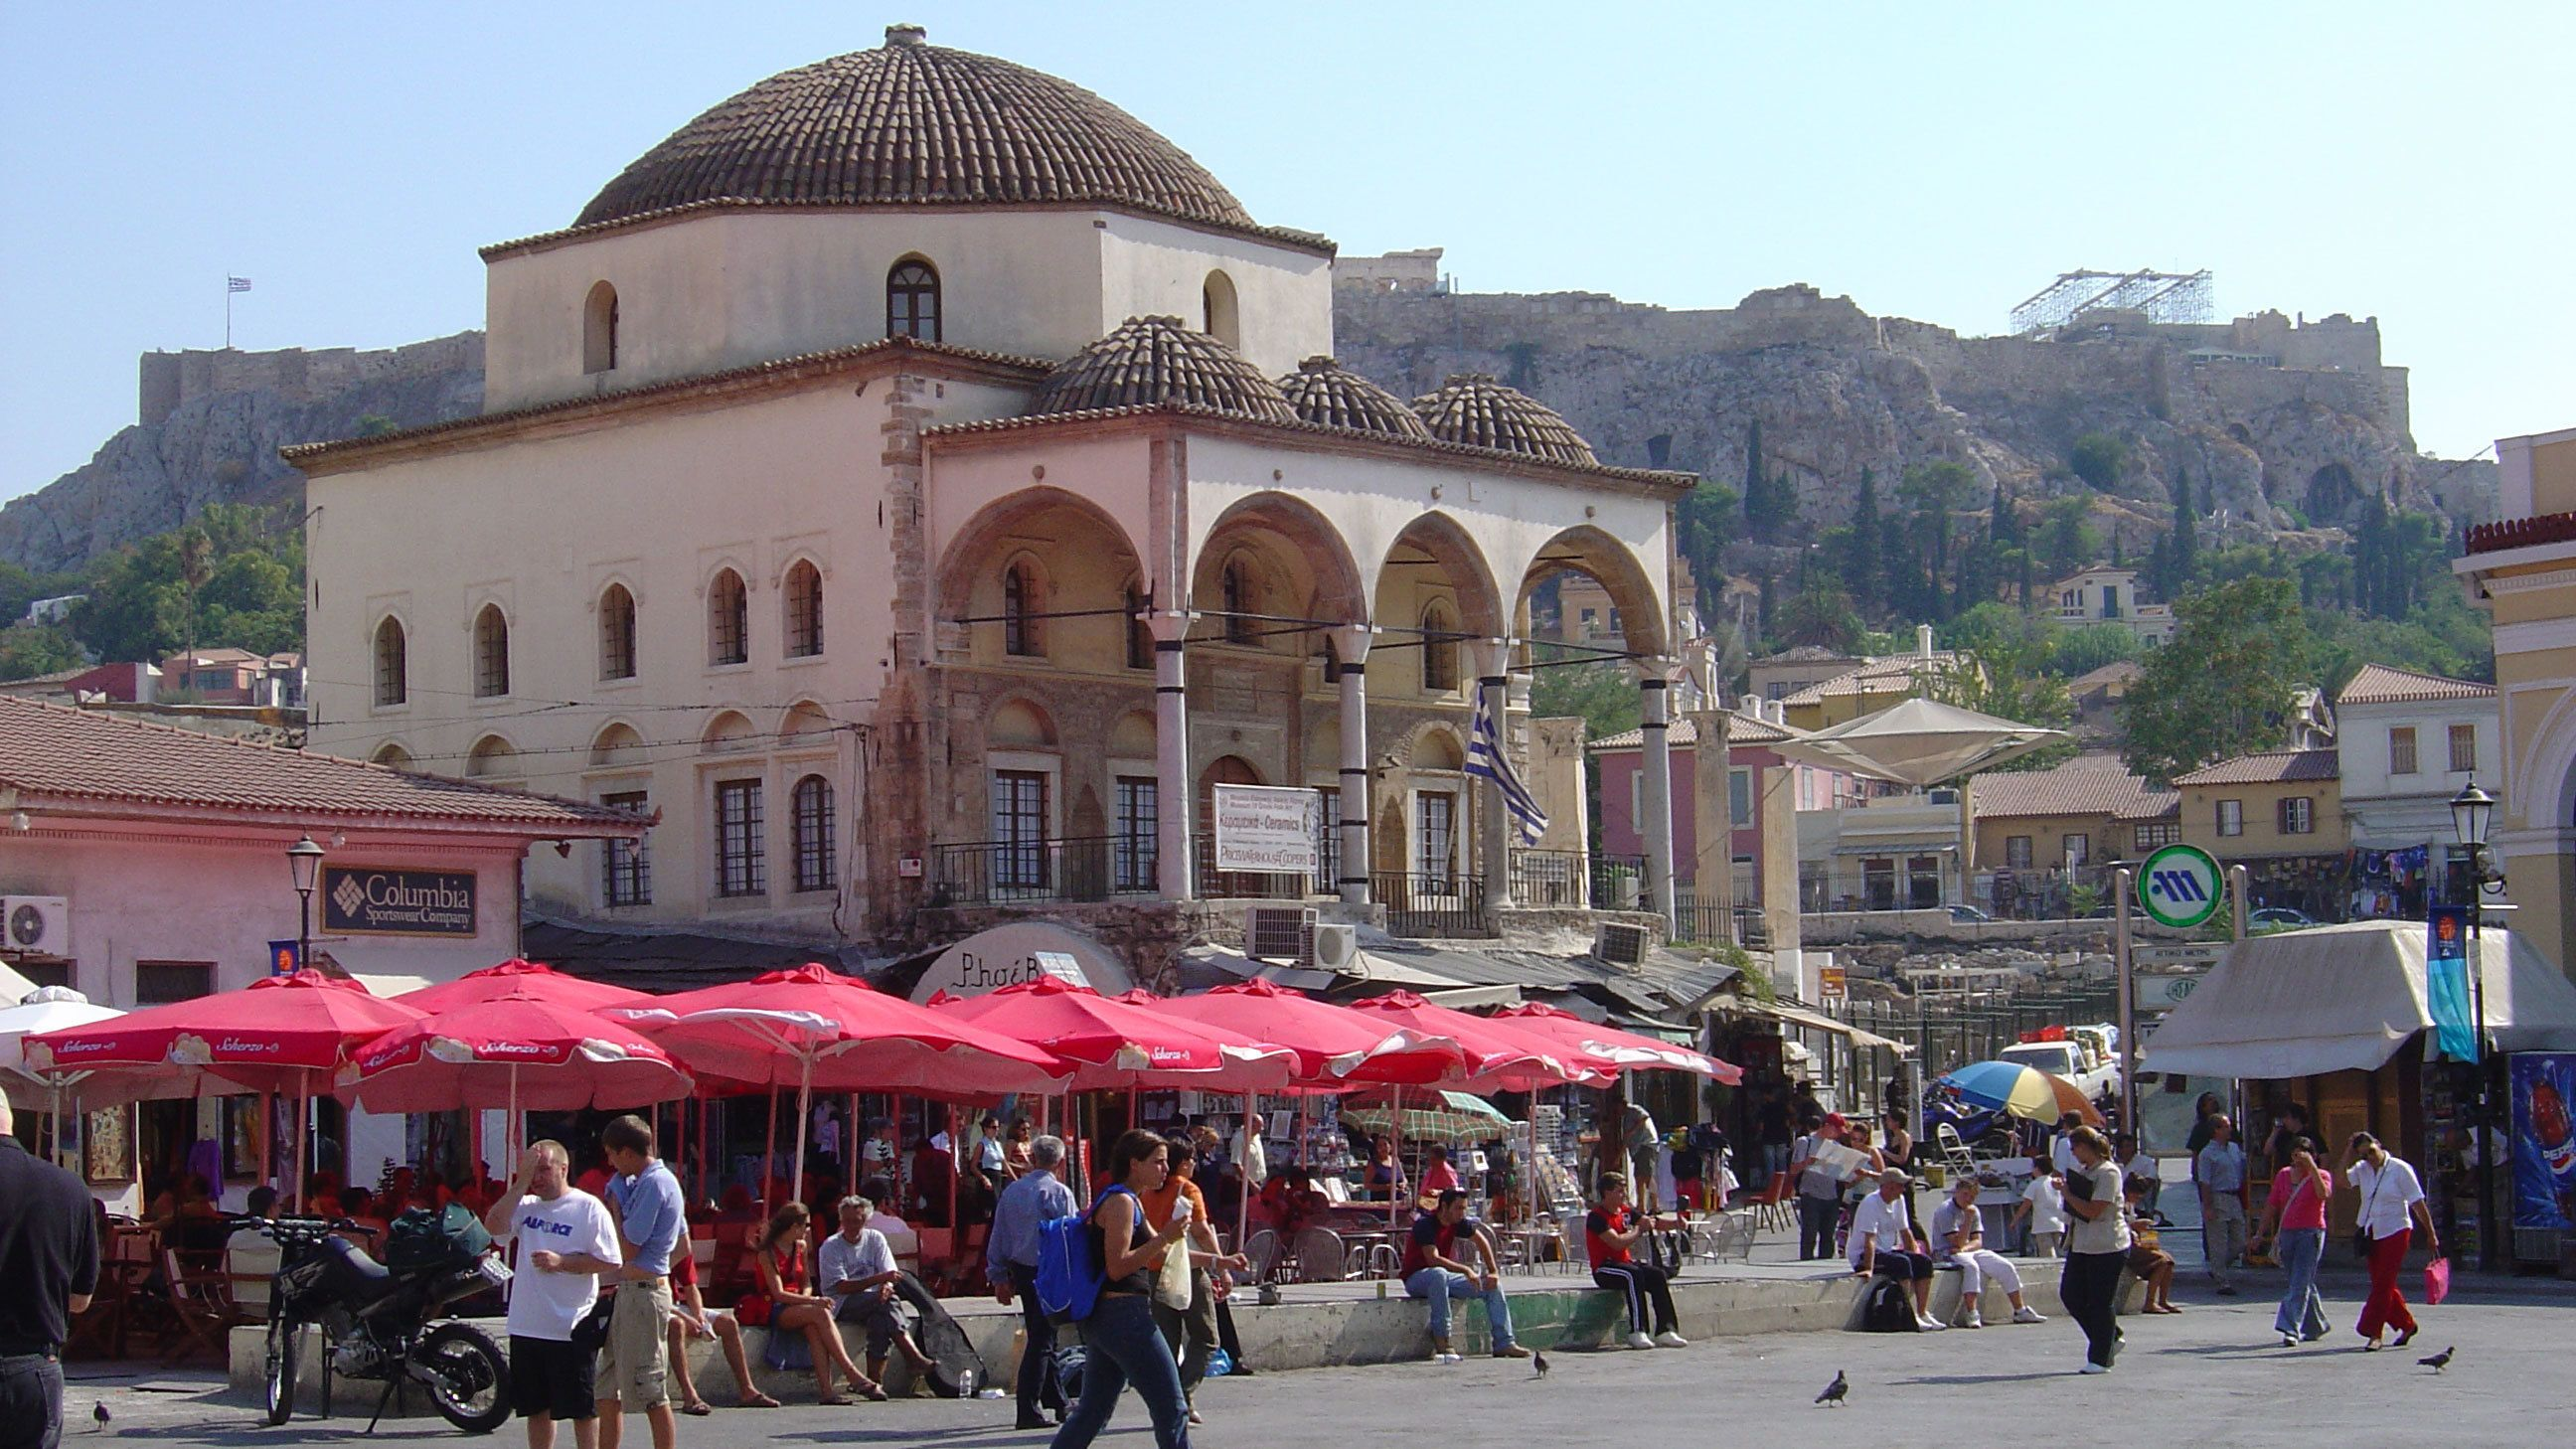 People shopping in the Monastiraki flea market district in Athens